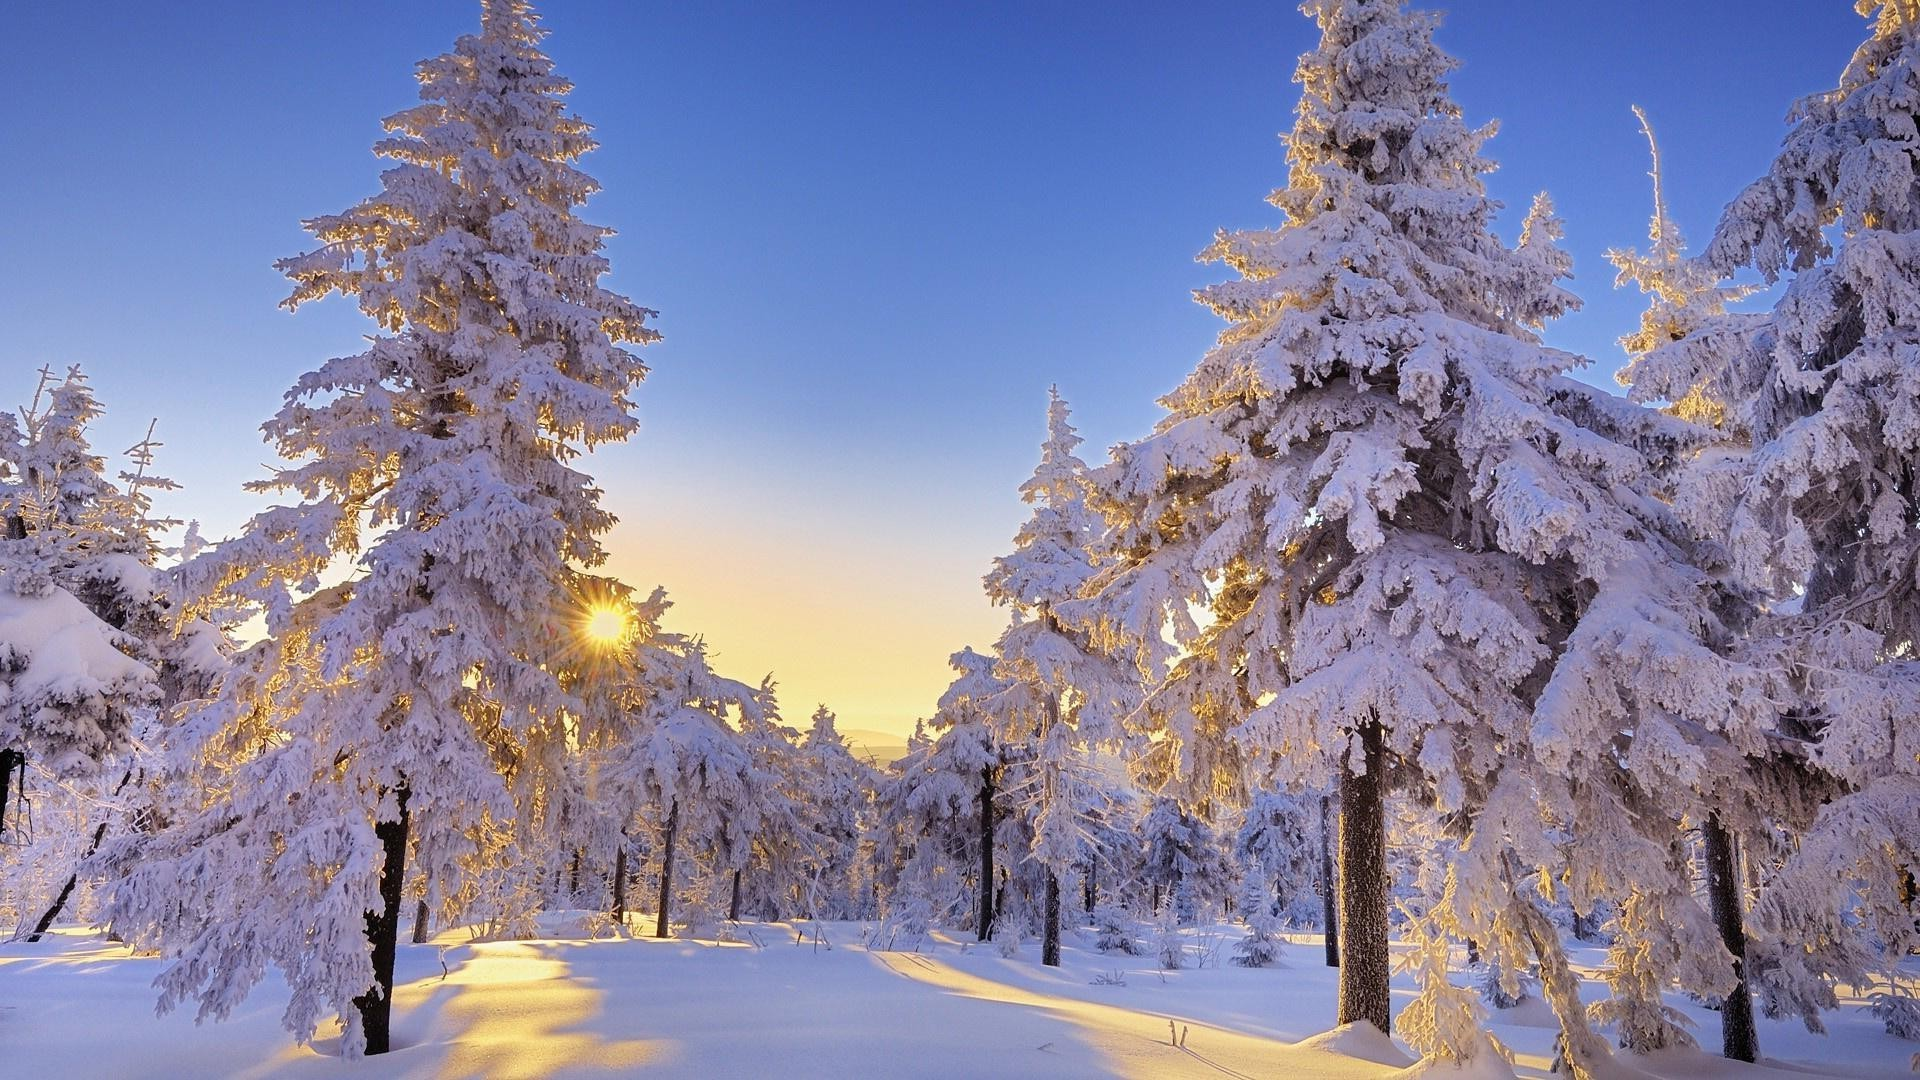 Sunset in winter forest